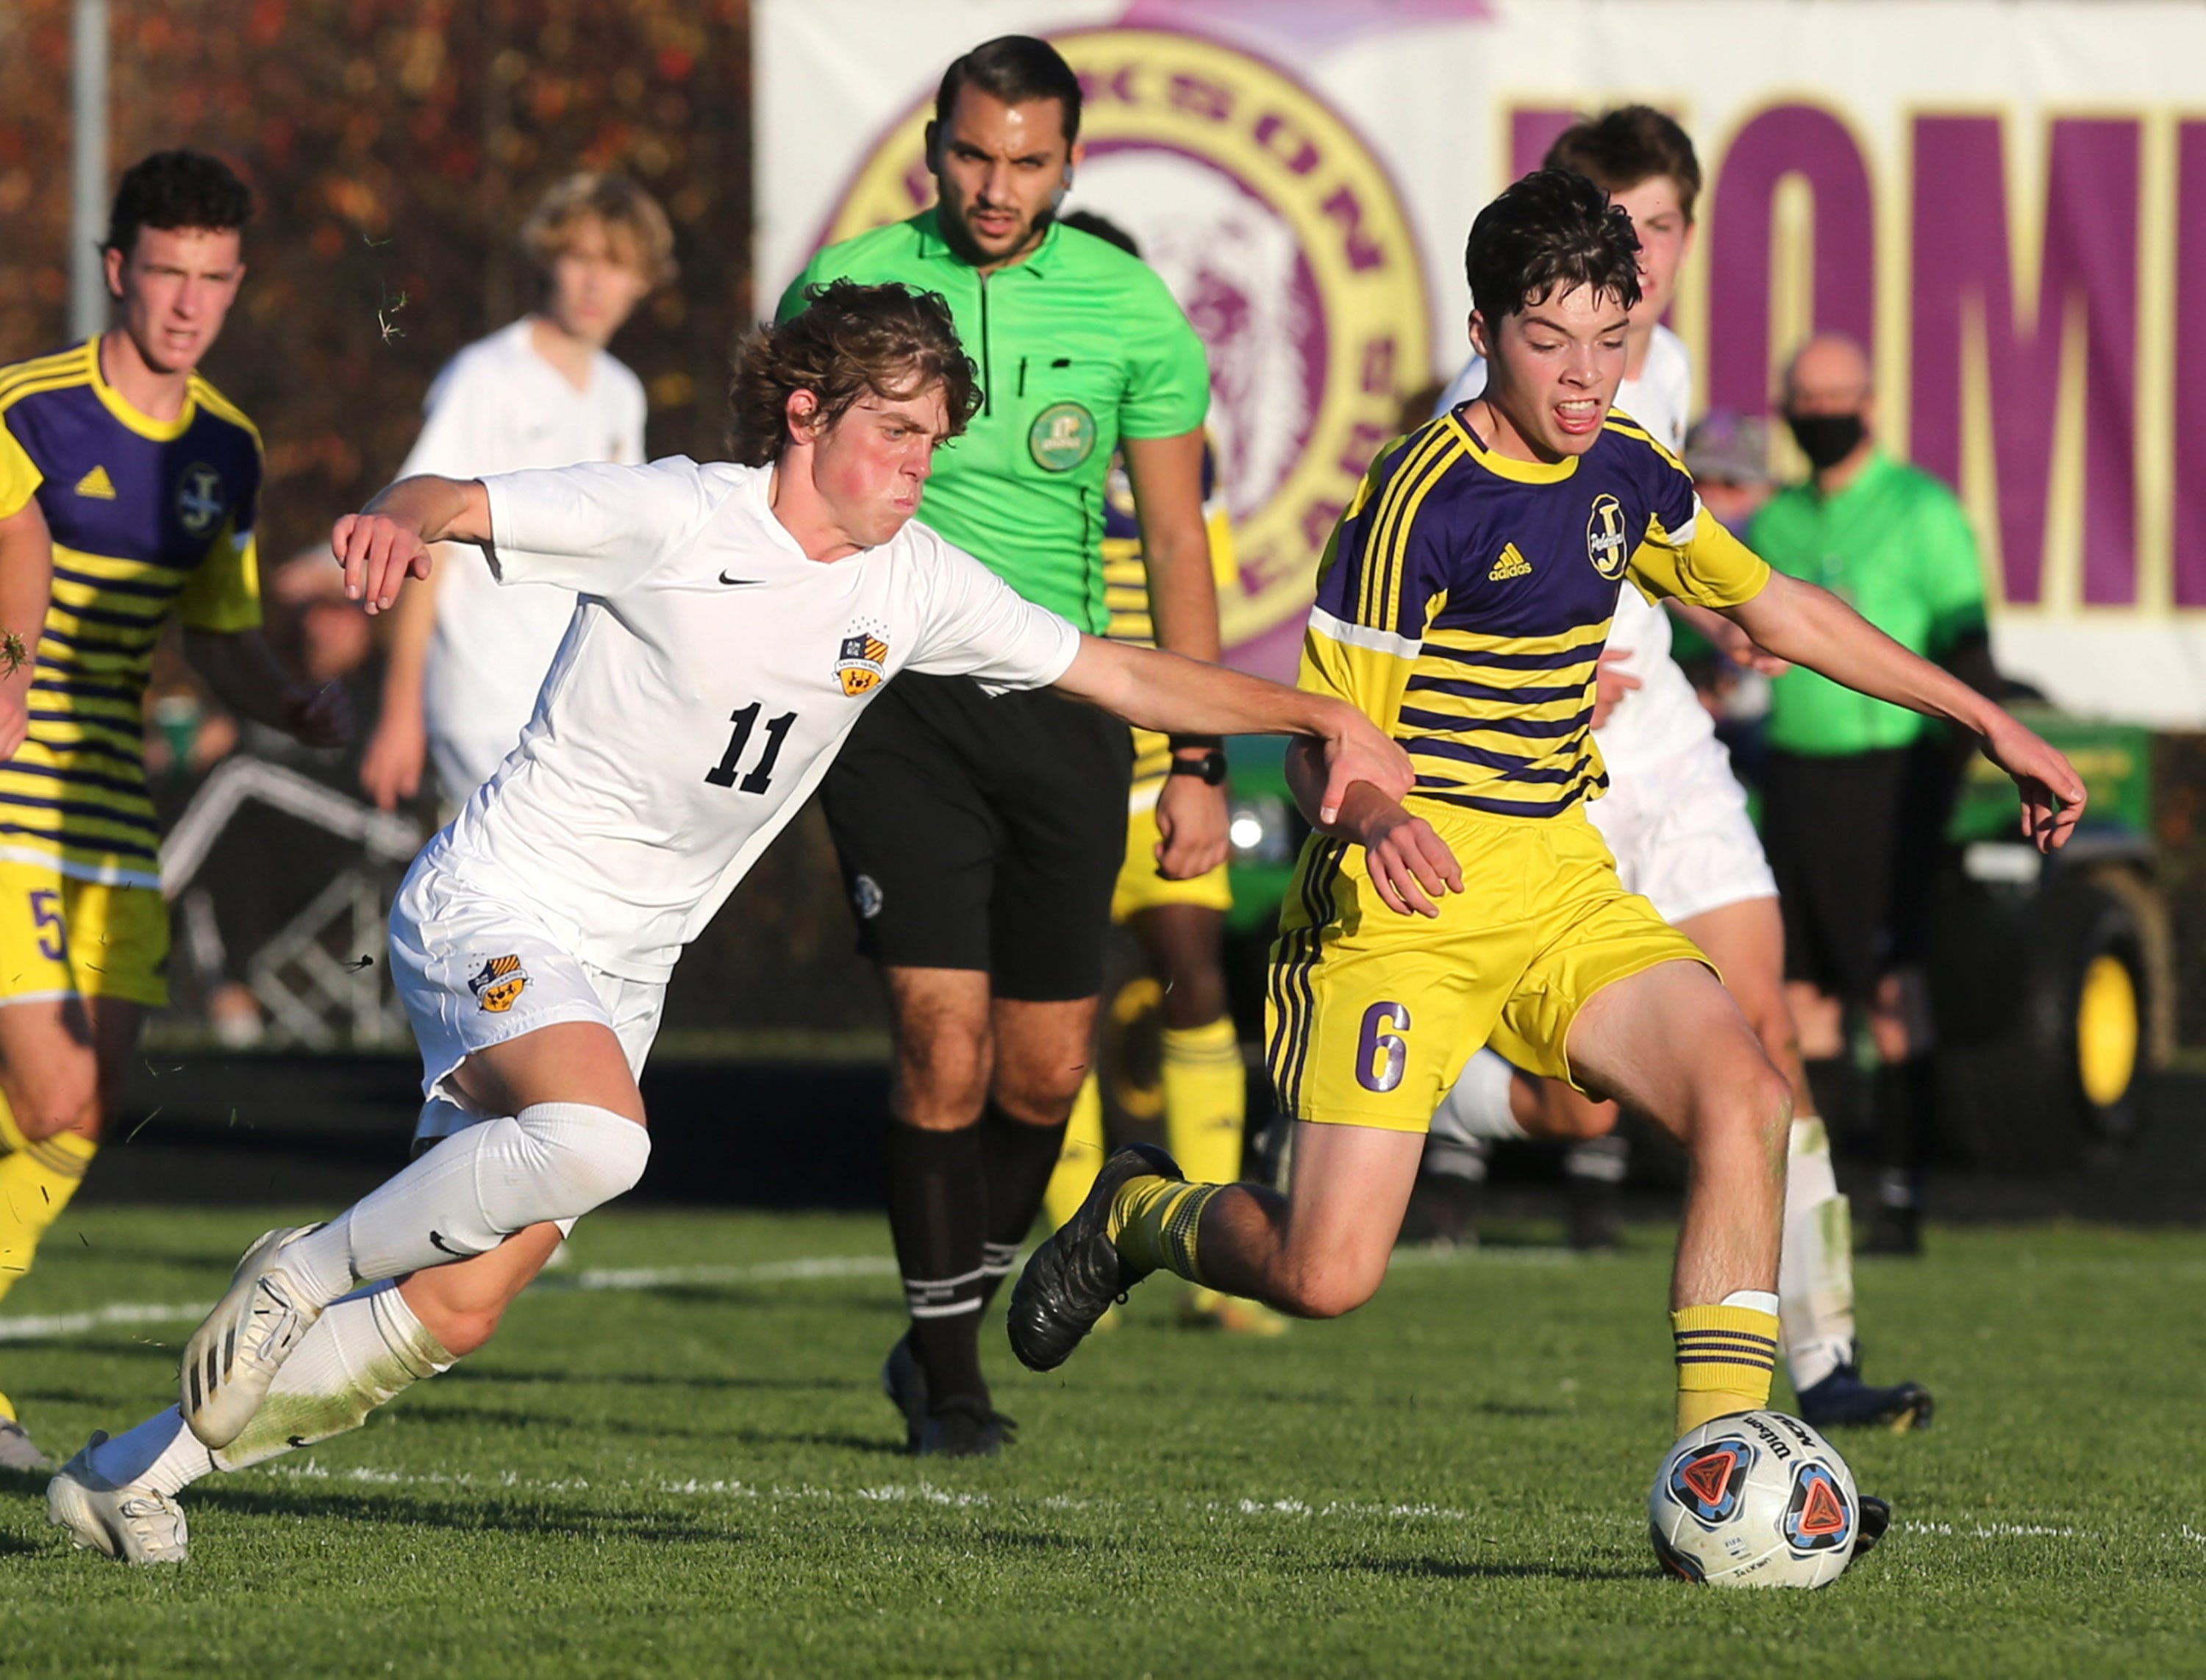 Ethan Corsi (6) of Jackson is slowed down by Luciano Pechota (11) of Saint Ignatius during their DI regional final at Jackson on Saturday, Nov. 7, 2020.